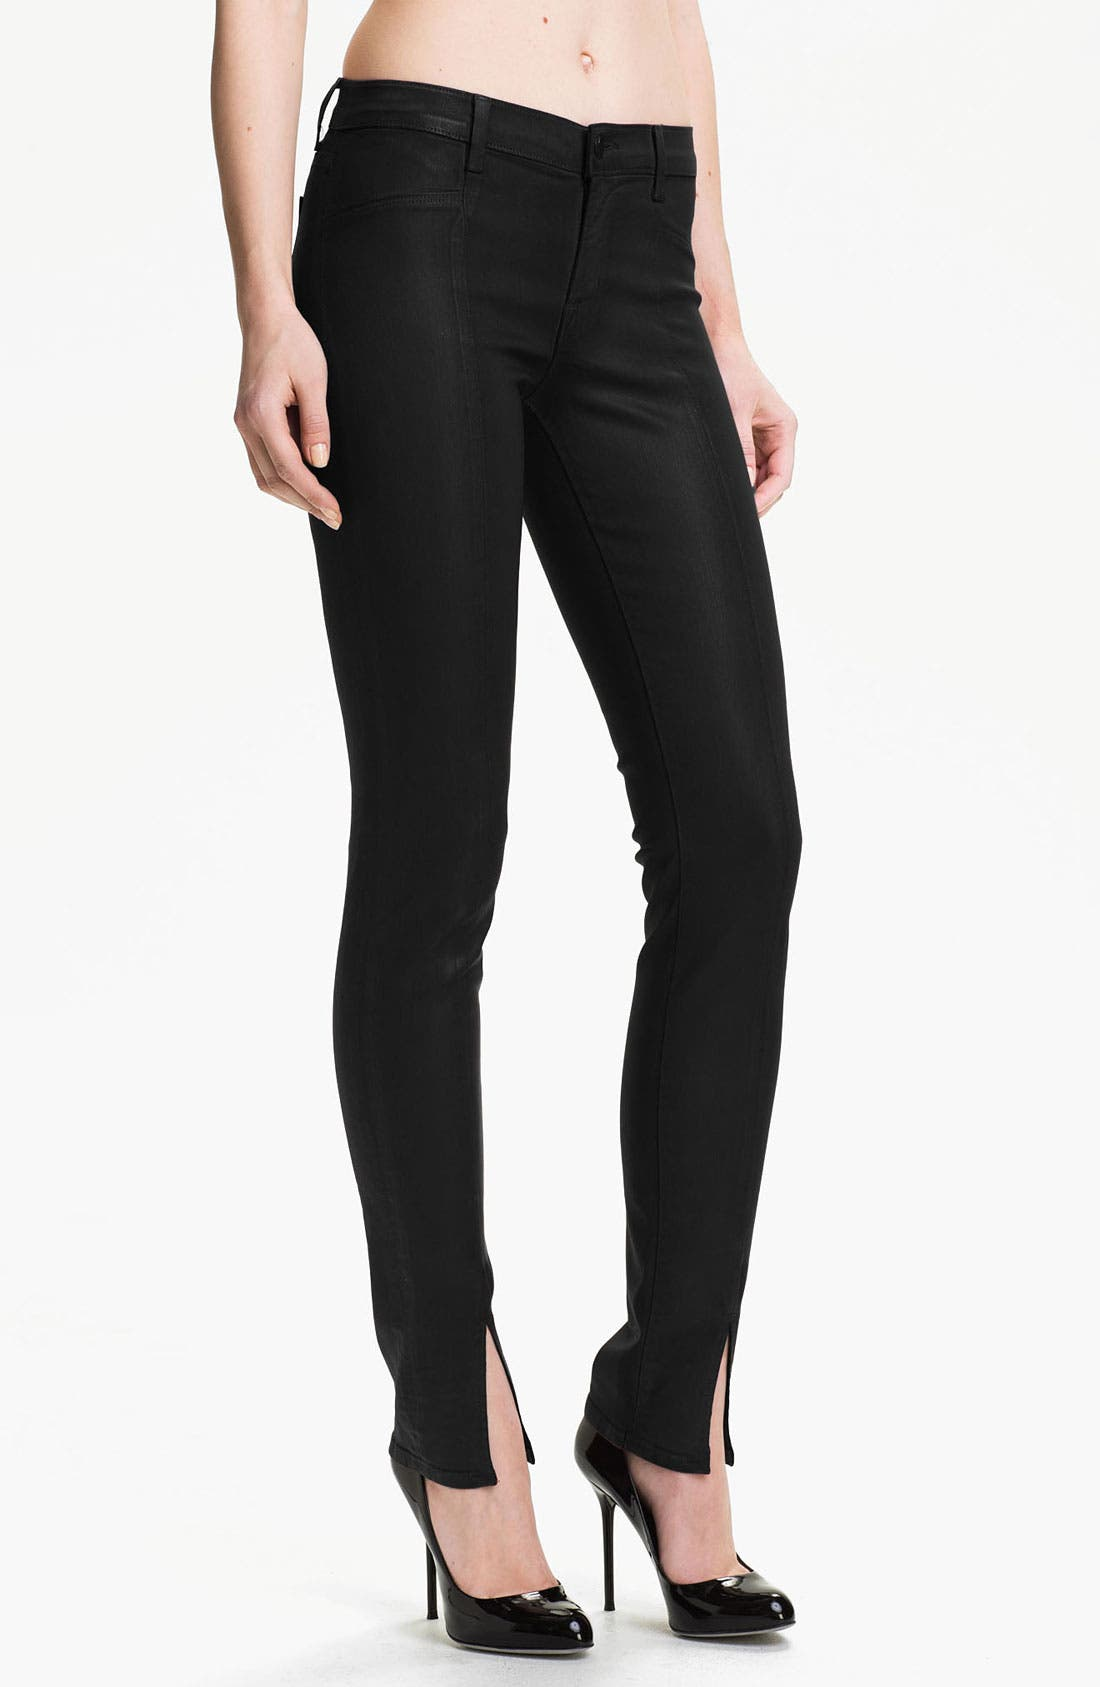 Alternate Image 1 Selected - J Brand Coated Stretch Skinny Jeans